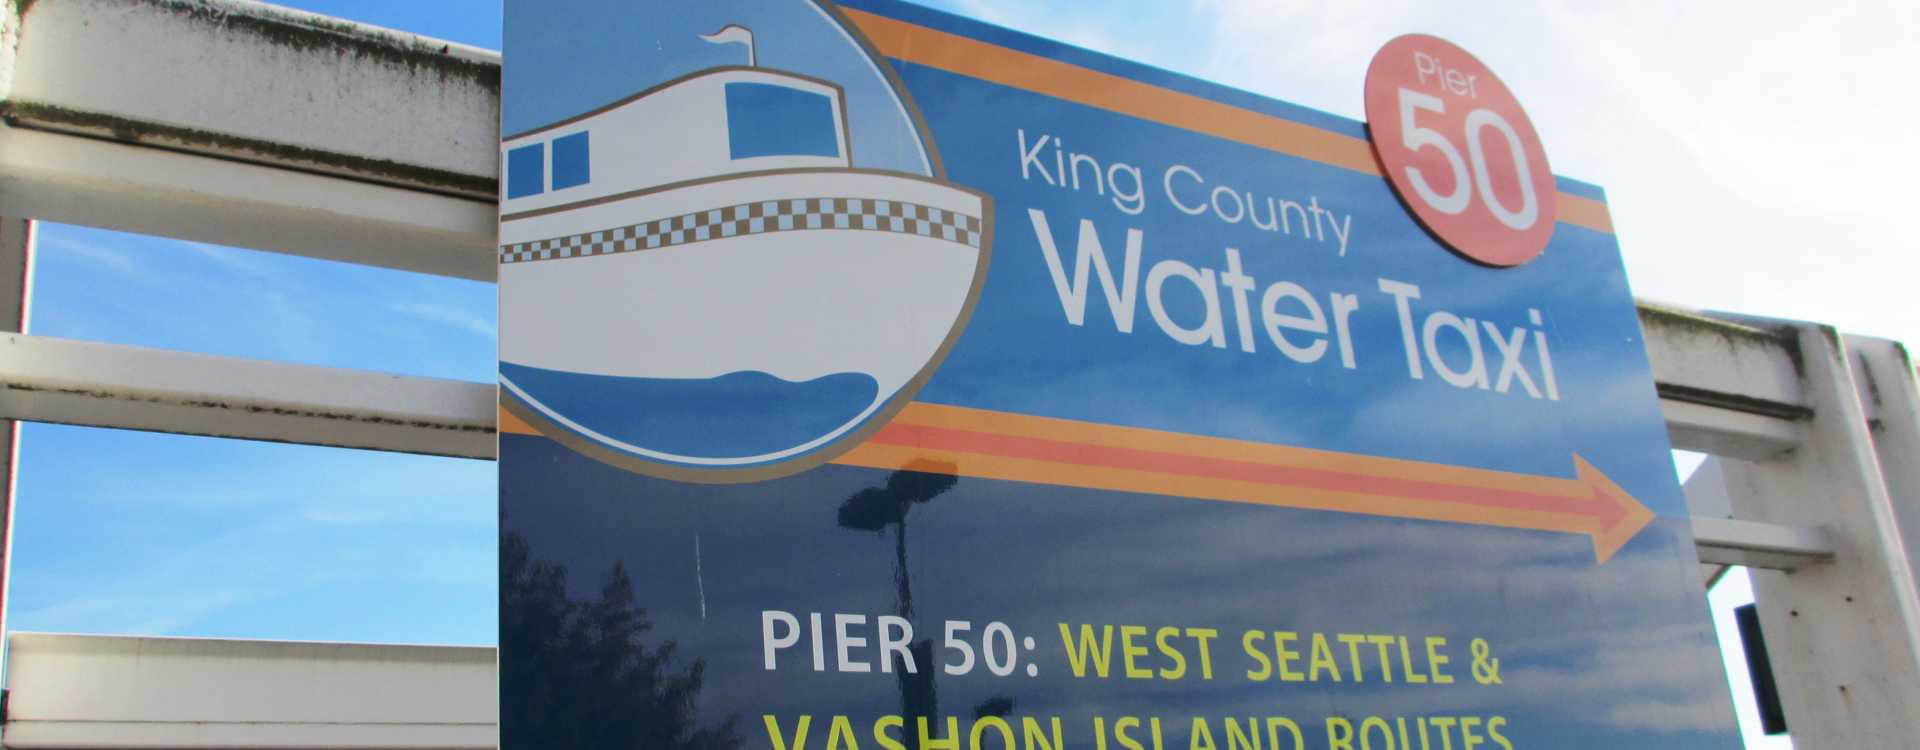 King County Water Taxi - West Seattle